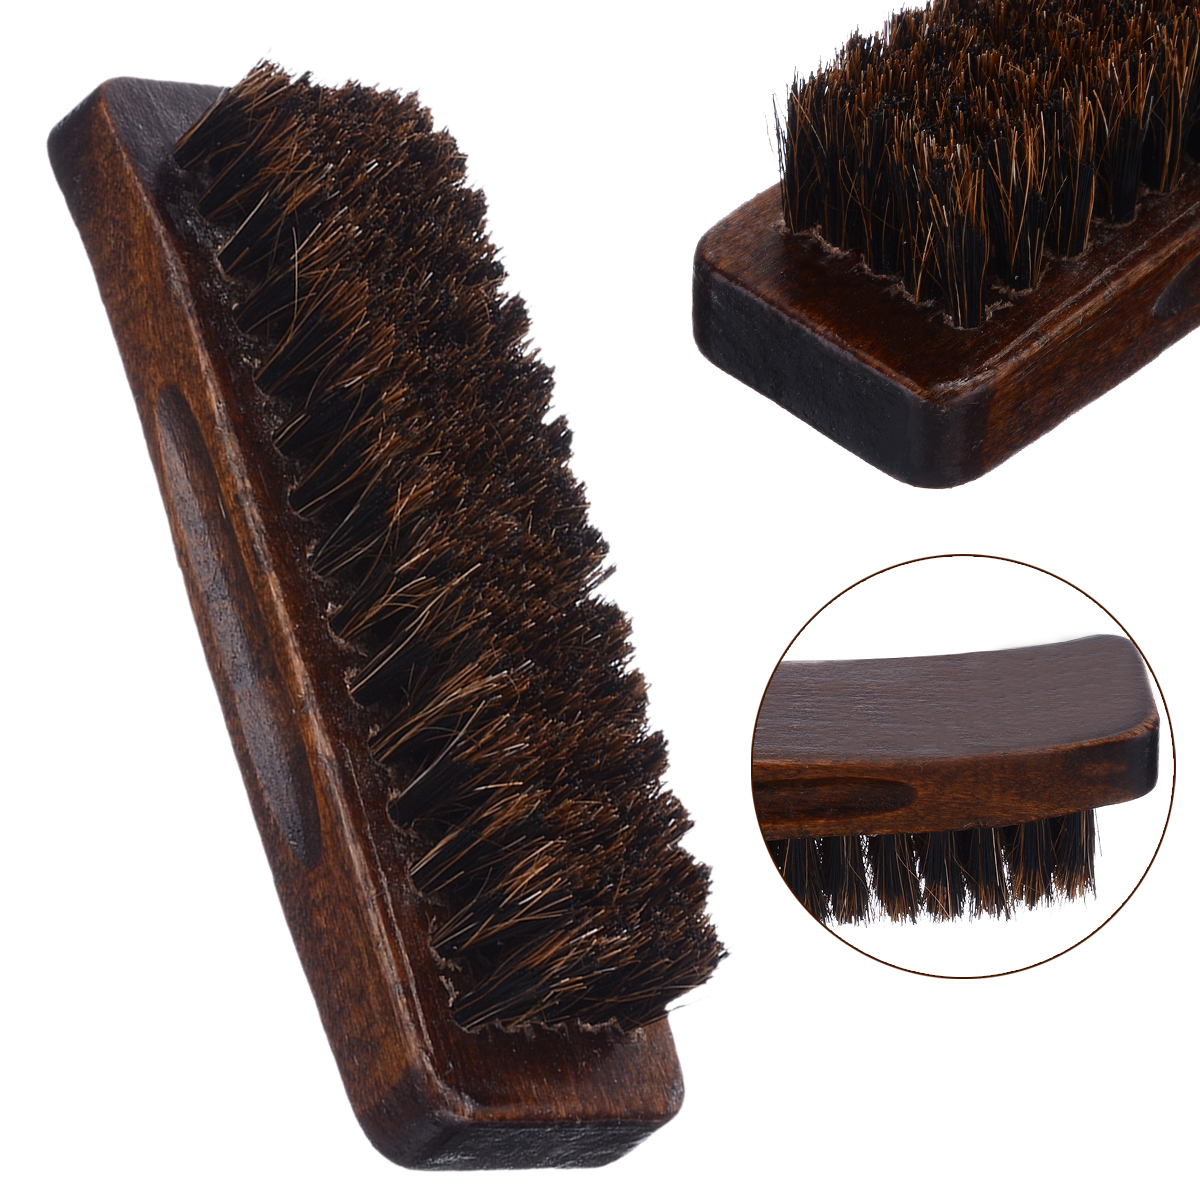 Wooden Handle Natural Bristle Horse Hair Shoe Shine Buffing Cleaning Brush Polishing Tool Home Cleaning Gadget